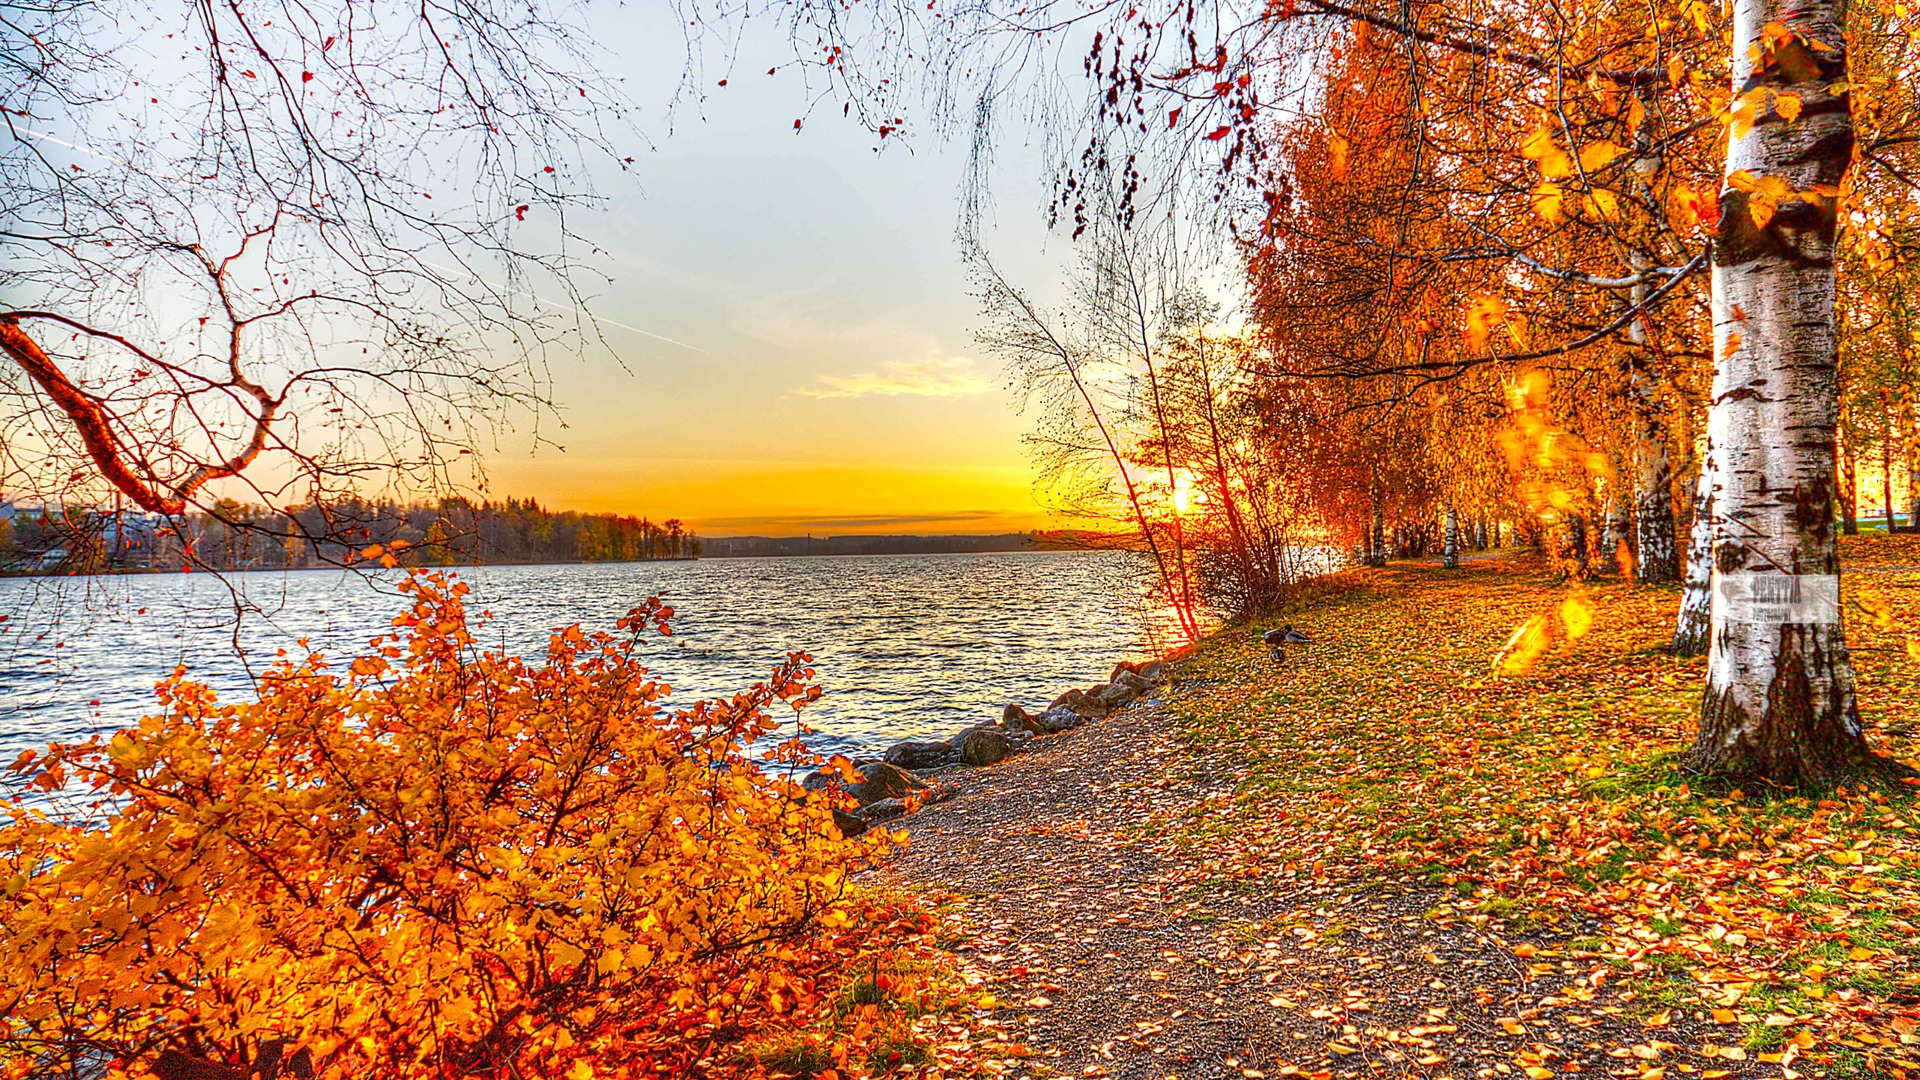 Beautiful Autumn Landscape Wallpaper